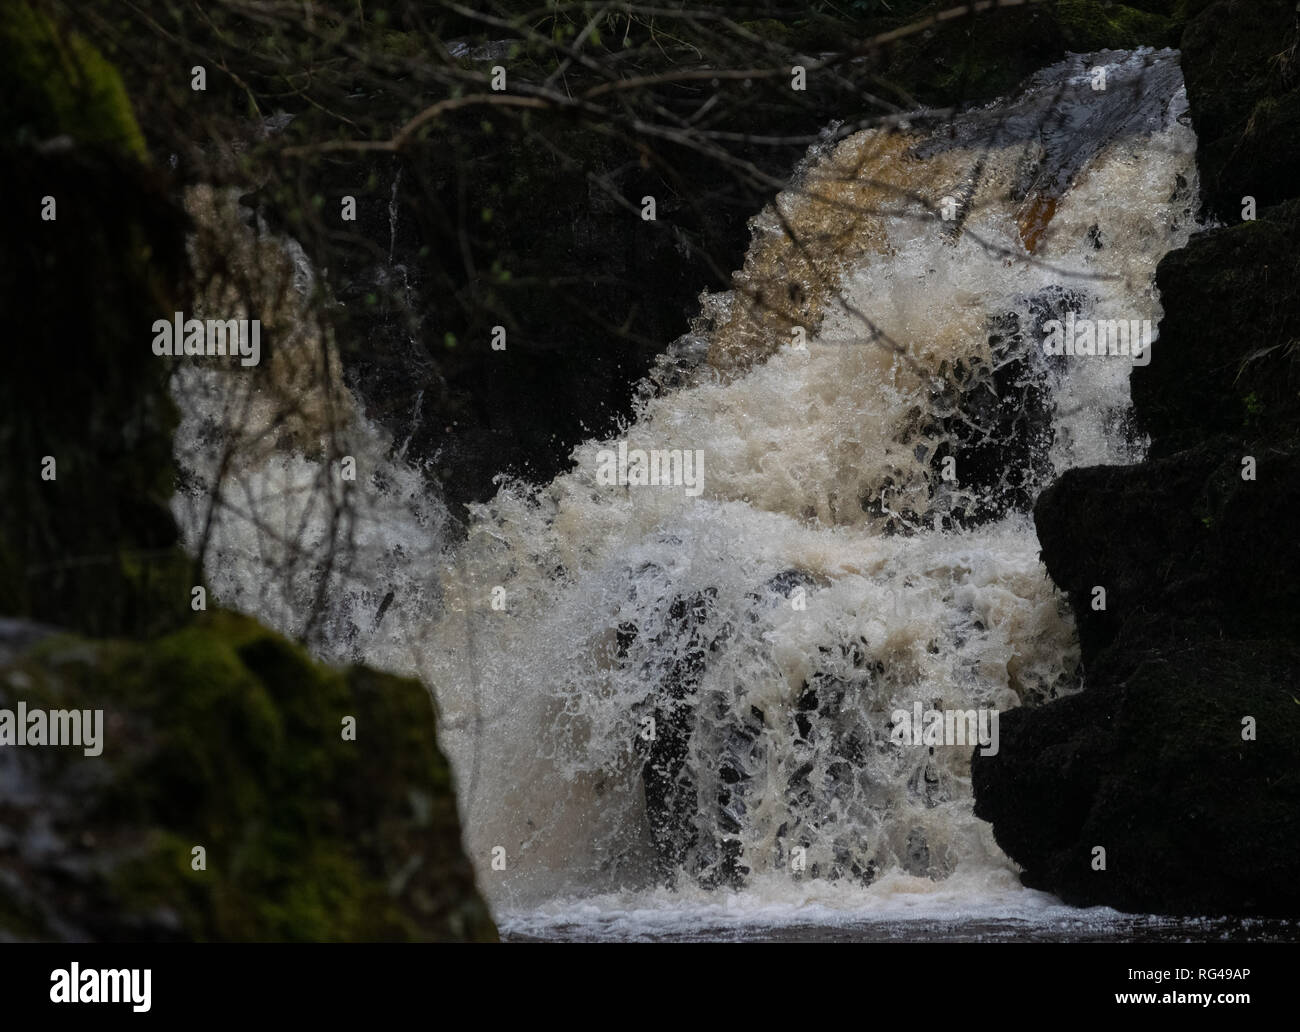 Hidden waterfall in a forest - Stock Image